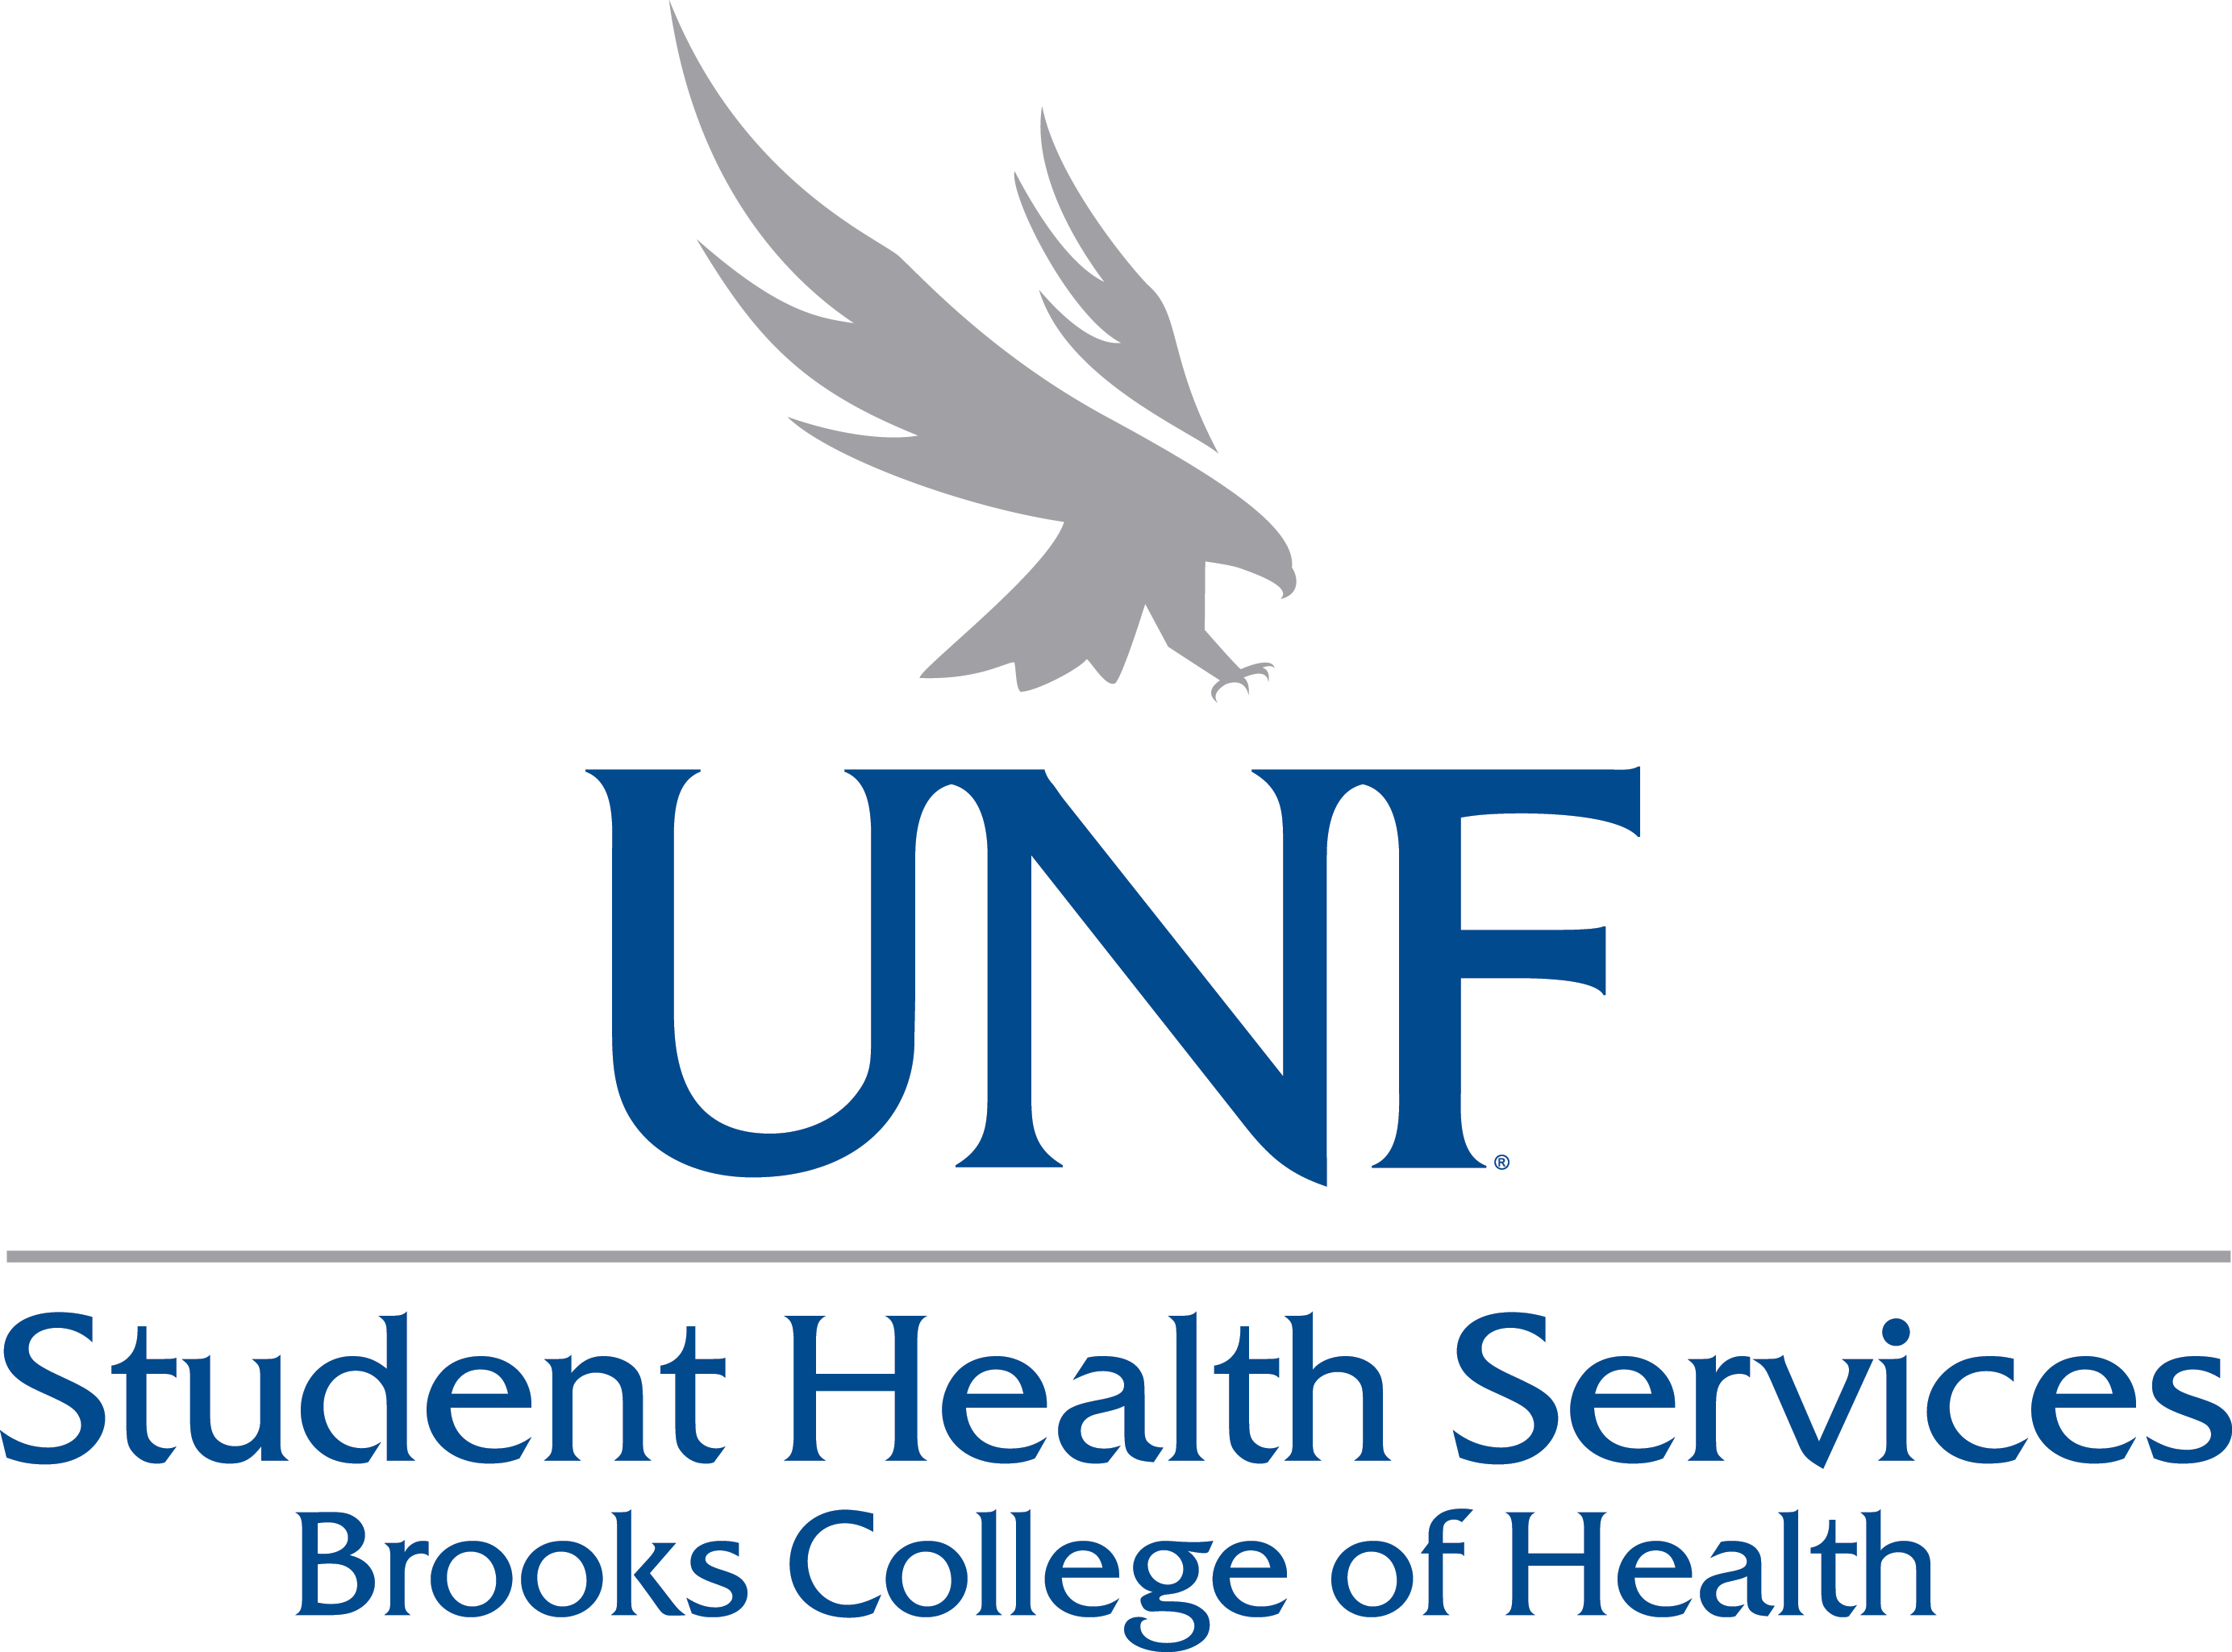 Student Health Services logo in color